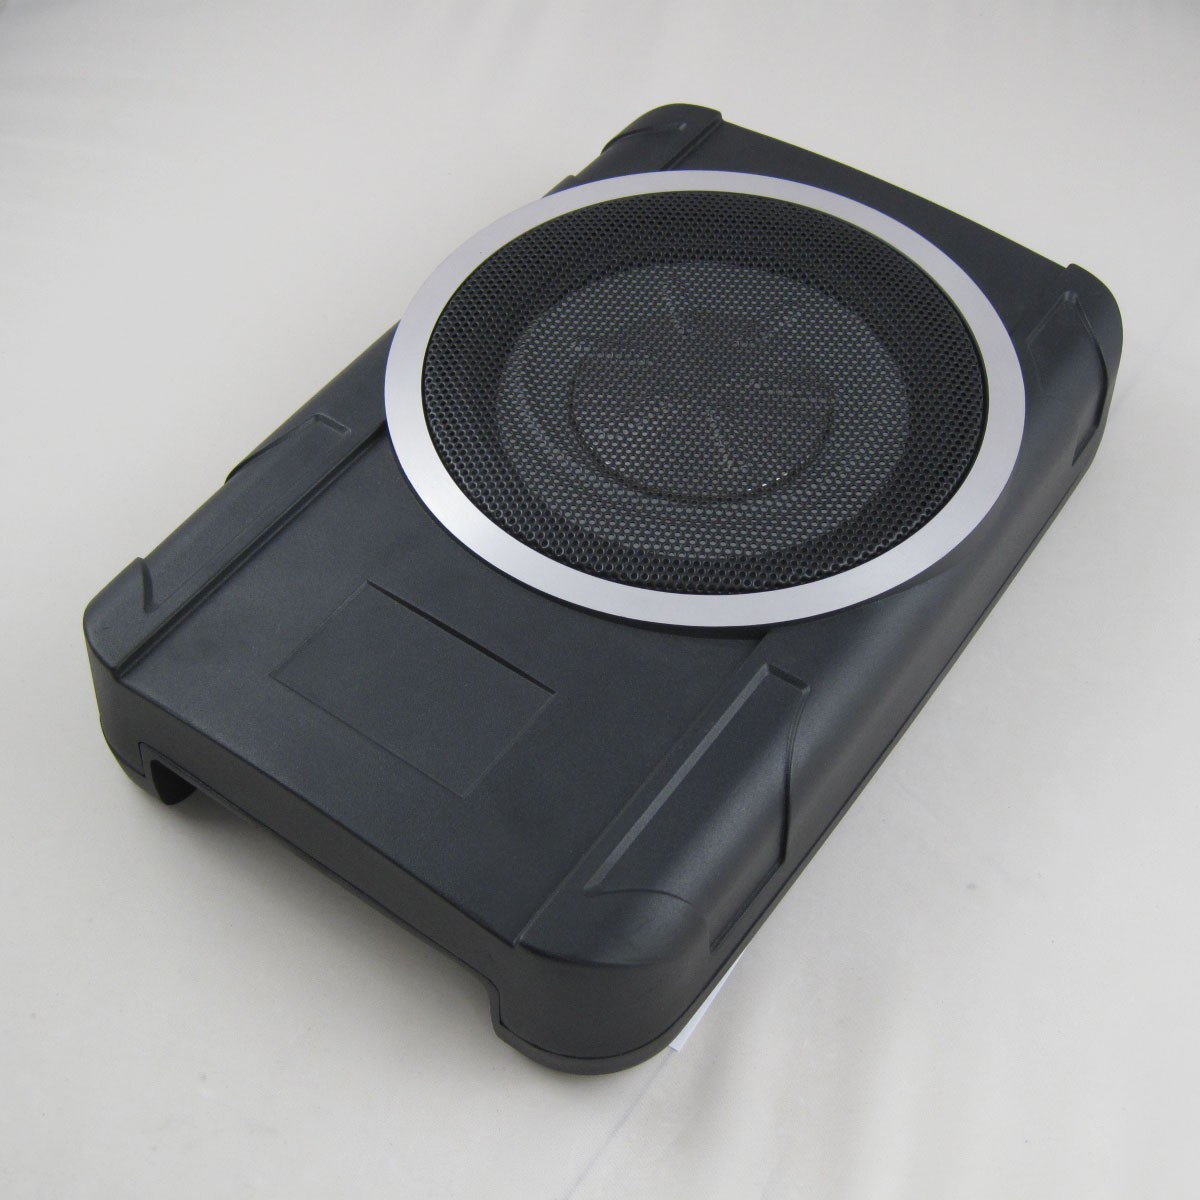 10 Inch Under Seat Subwoofer Box With Built-in Amplifier